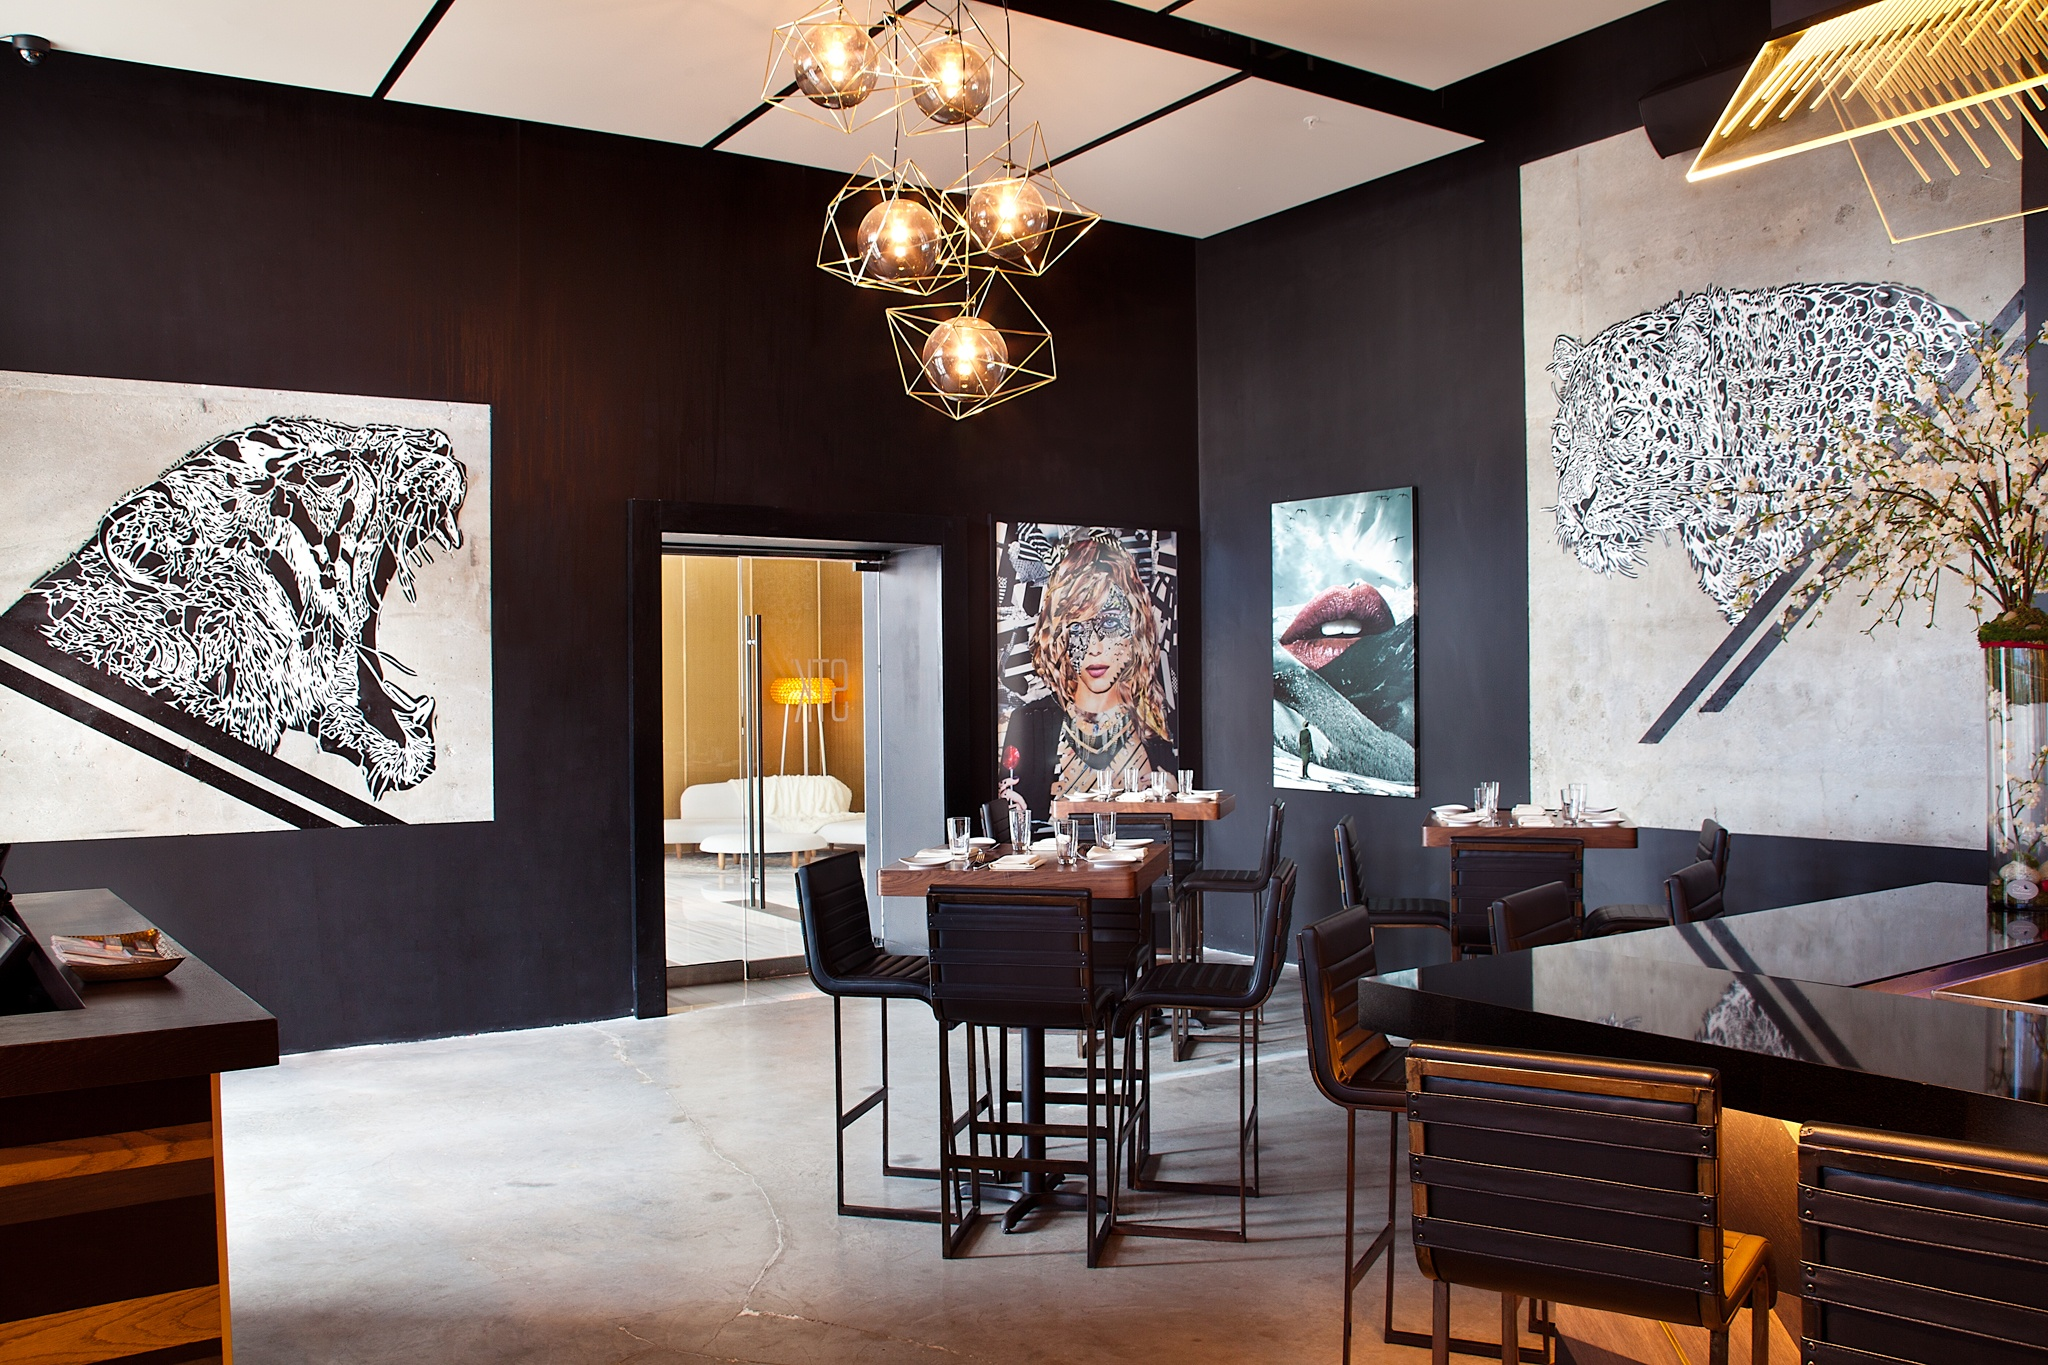 STK Miami with artwork by The DOWW, Katy Hirschfeld, and Jenya Vyguzov